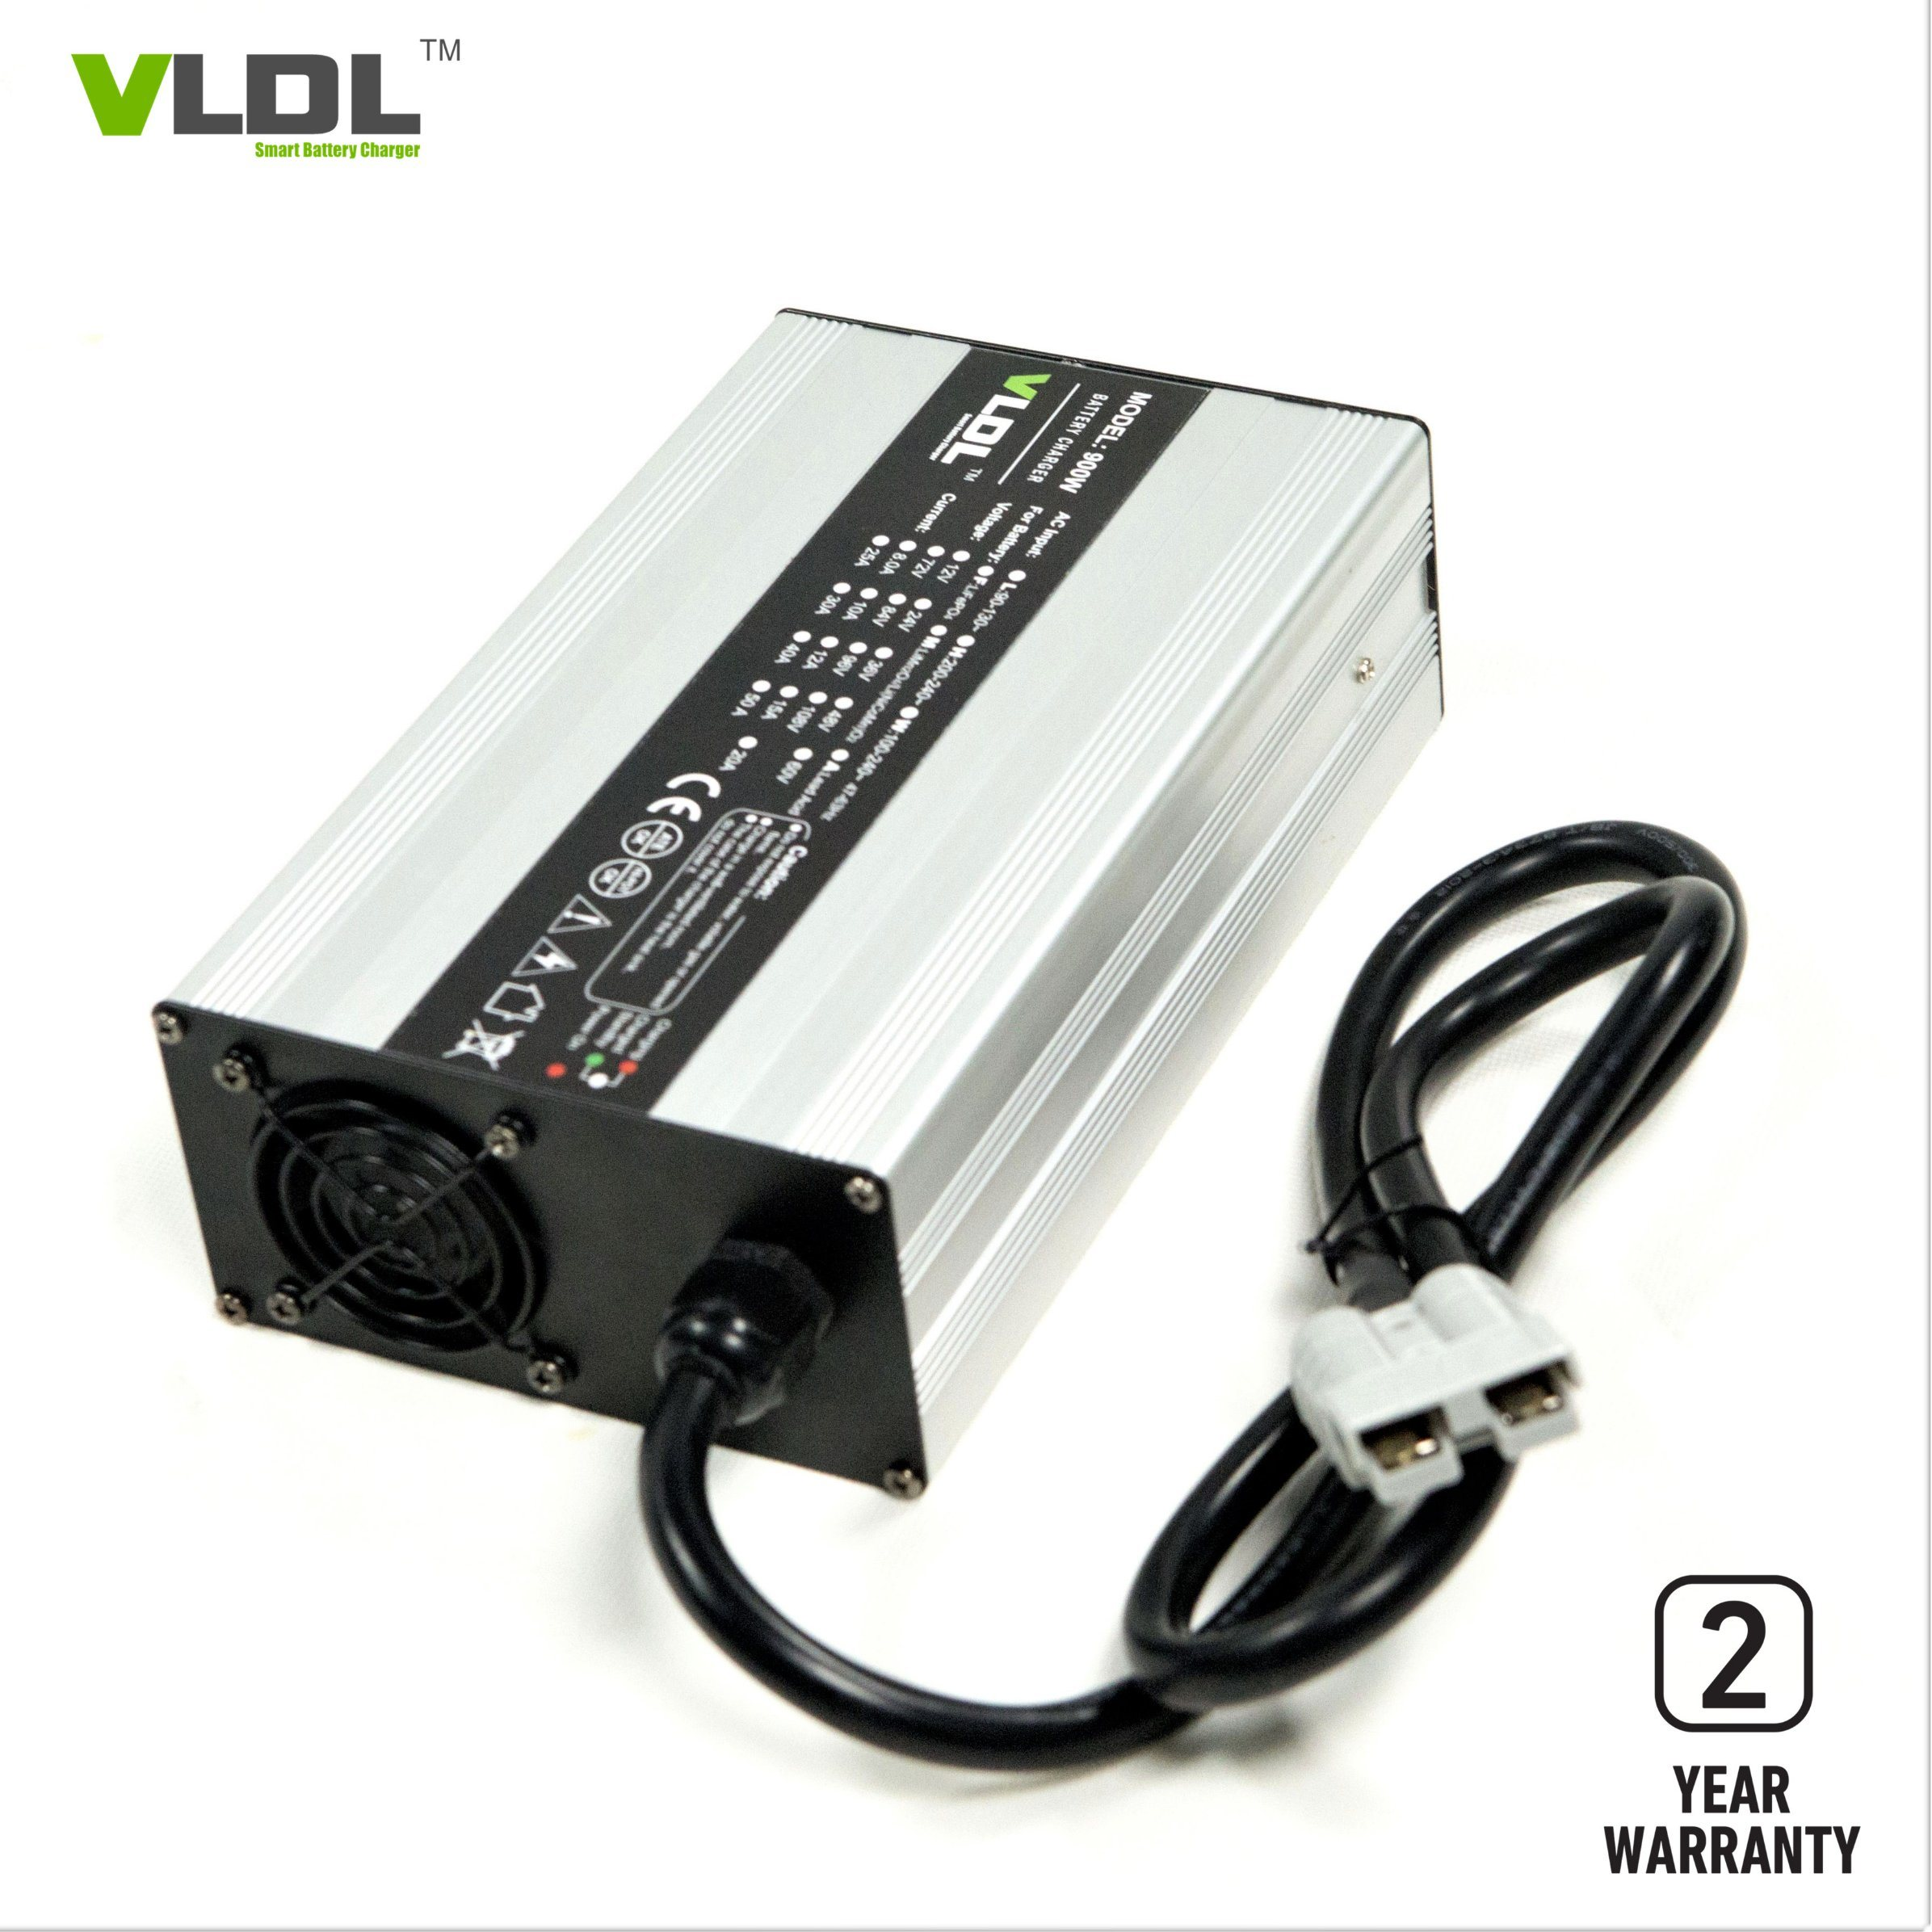 China 900w 72v 10a Lead Acid Battery Charger Vldl Brand High Current Quality With 2 Years Warranty Sla